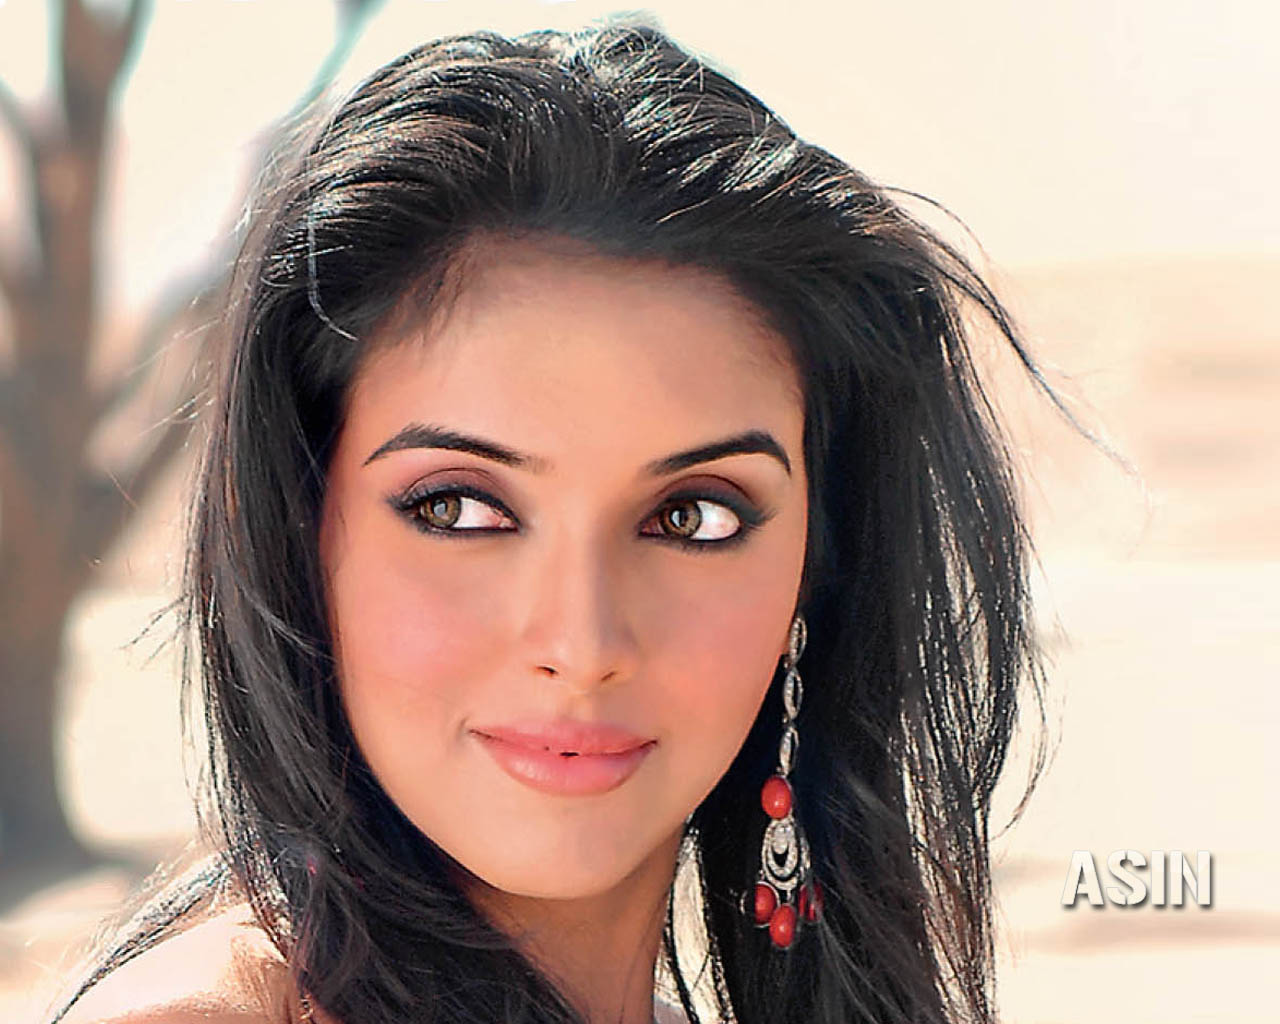 Asin indian hot actress